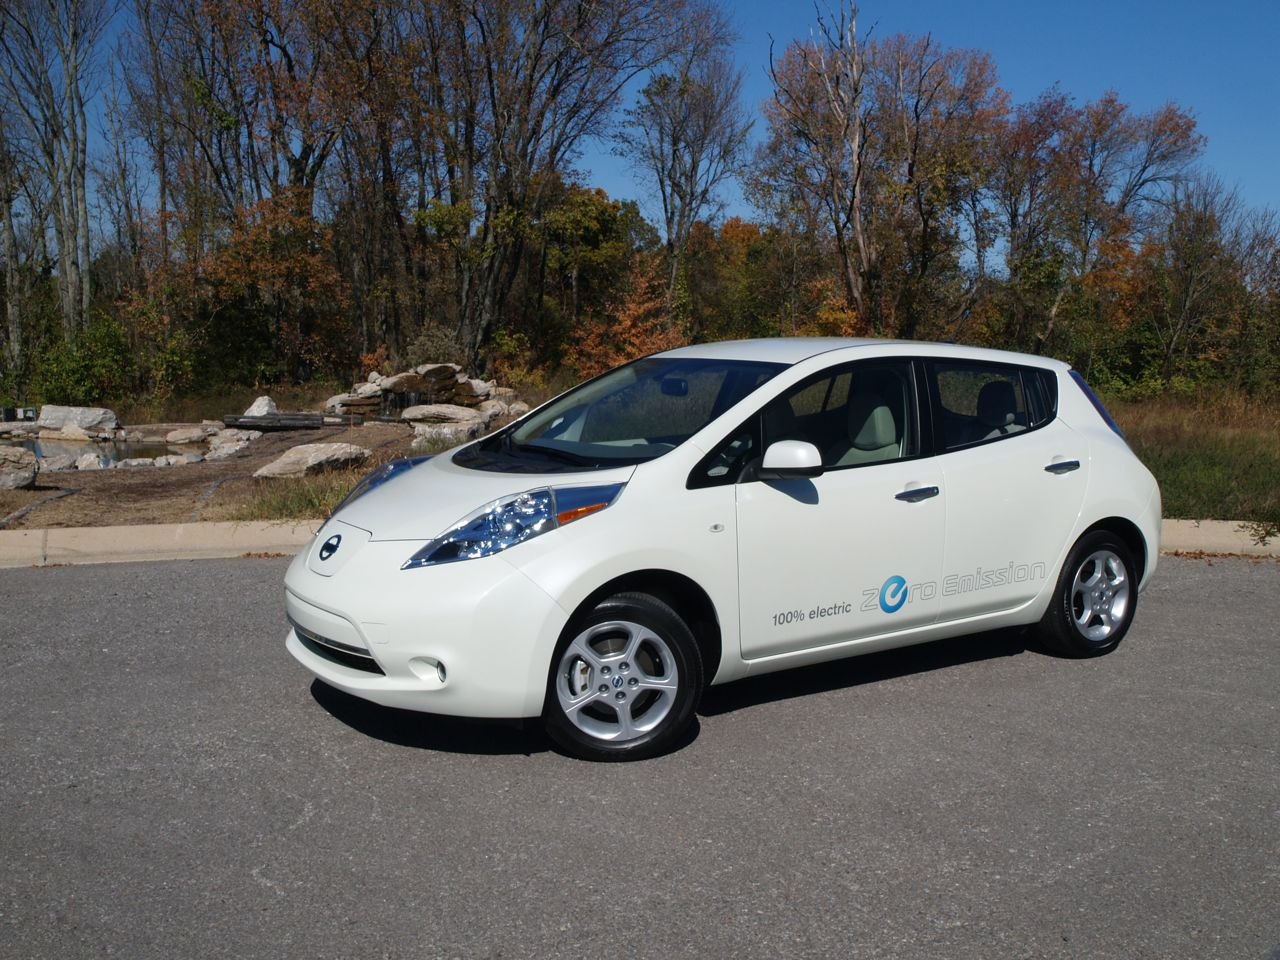 Nissan CEO: EV sales must eclipse 1M annually for sticker price to be competitve without subsidies thumbnail